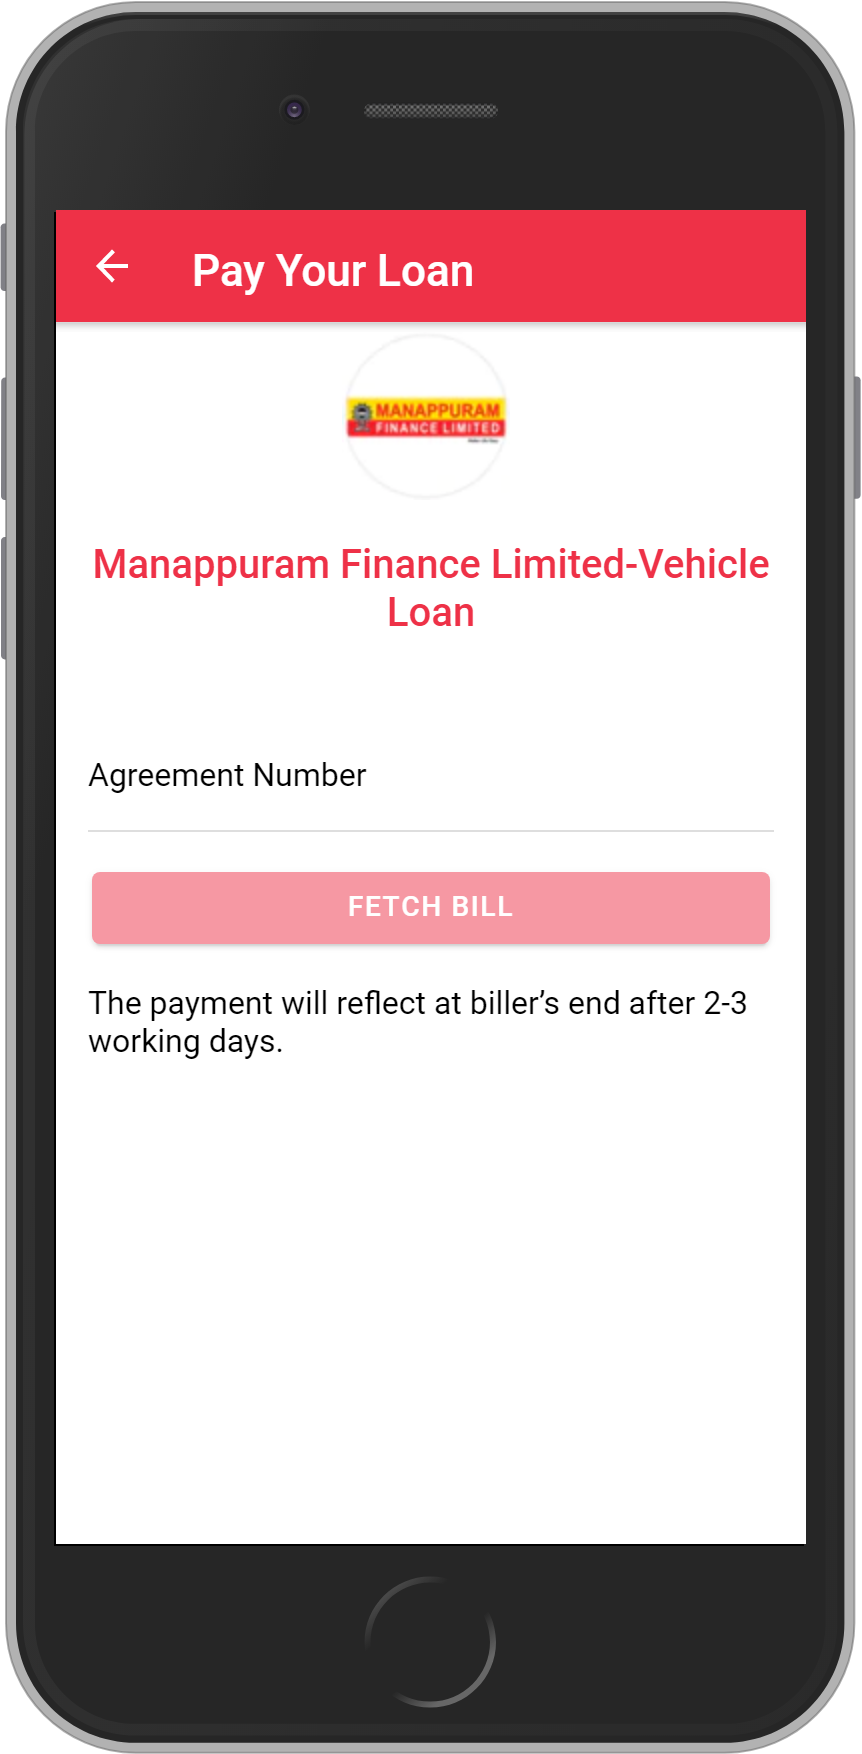 Get UNLIMITED <b>0.1%</b> CASHBACK on Manappuram Finance Limited-Vehicle Loan Loan Payment.